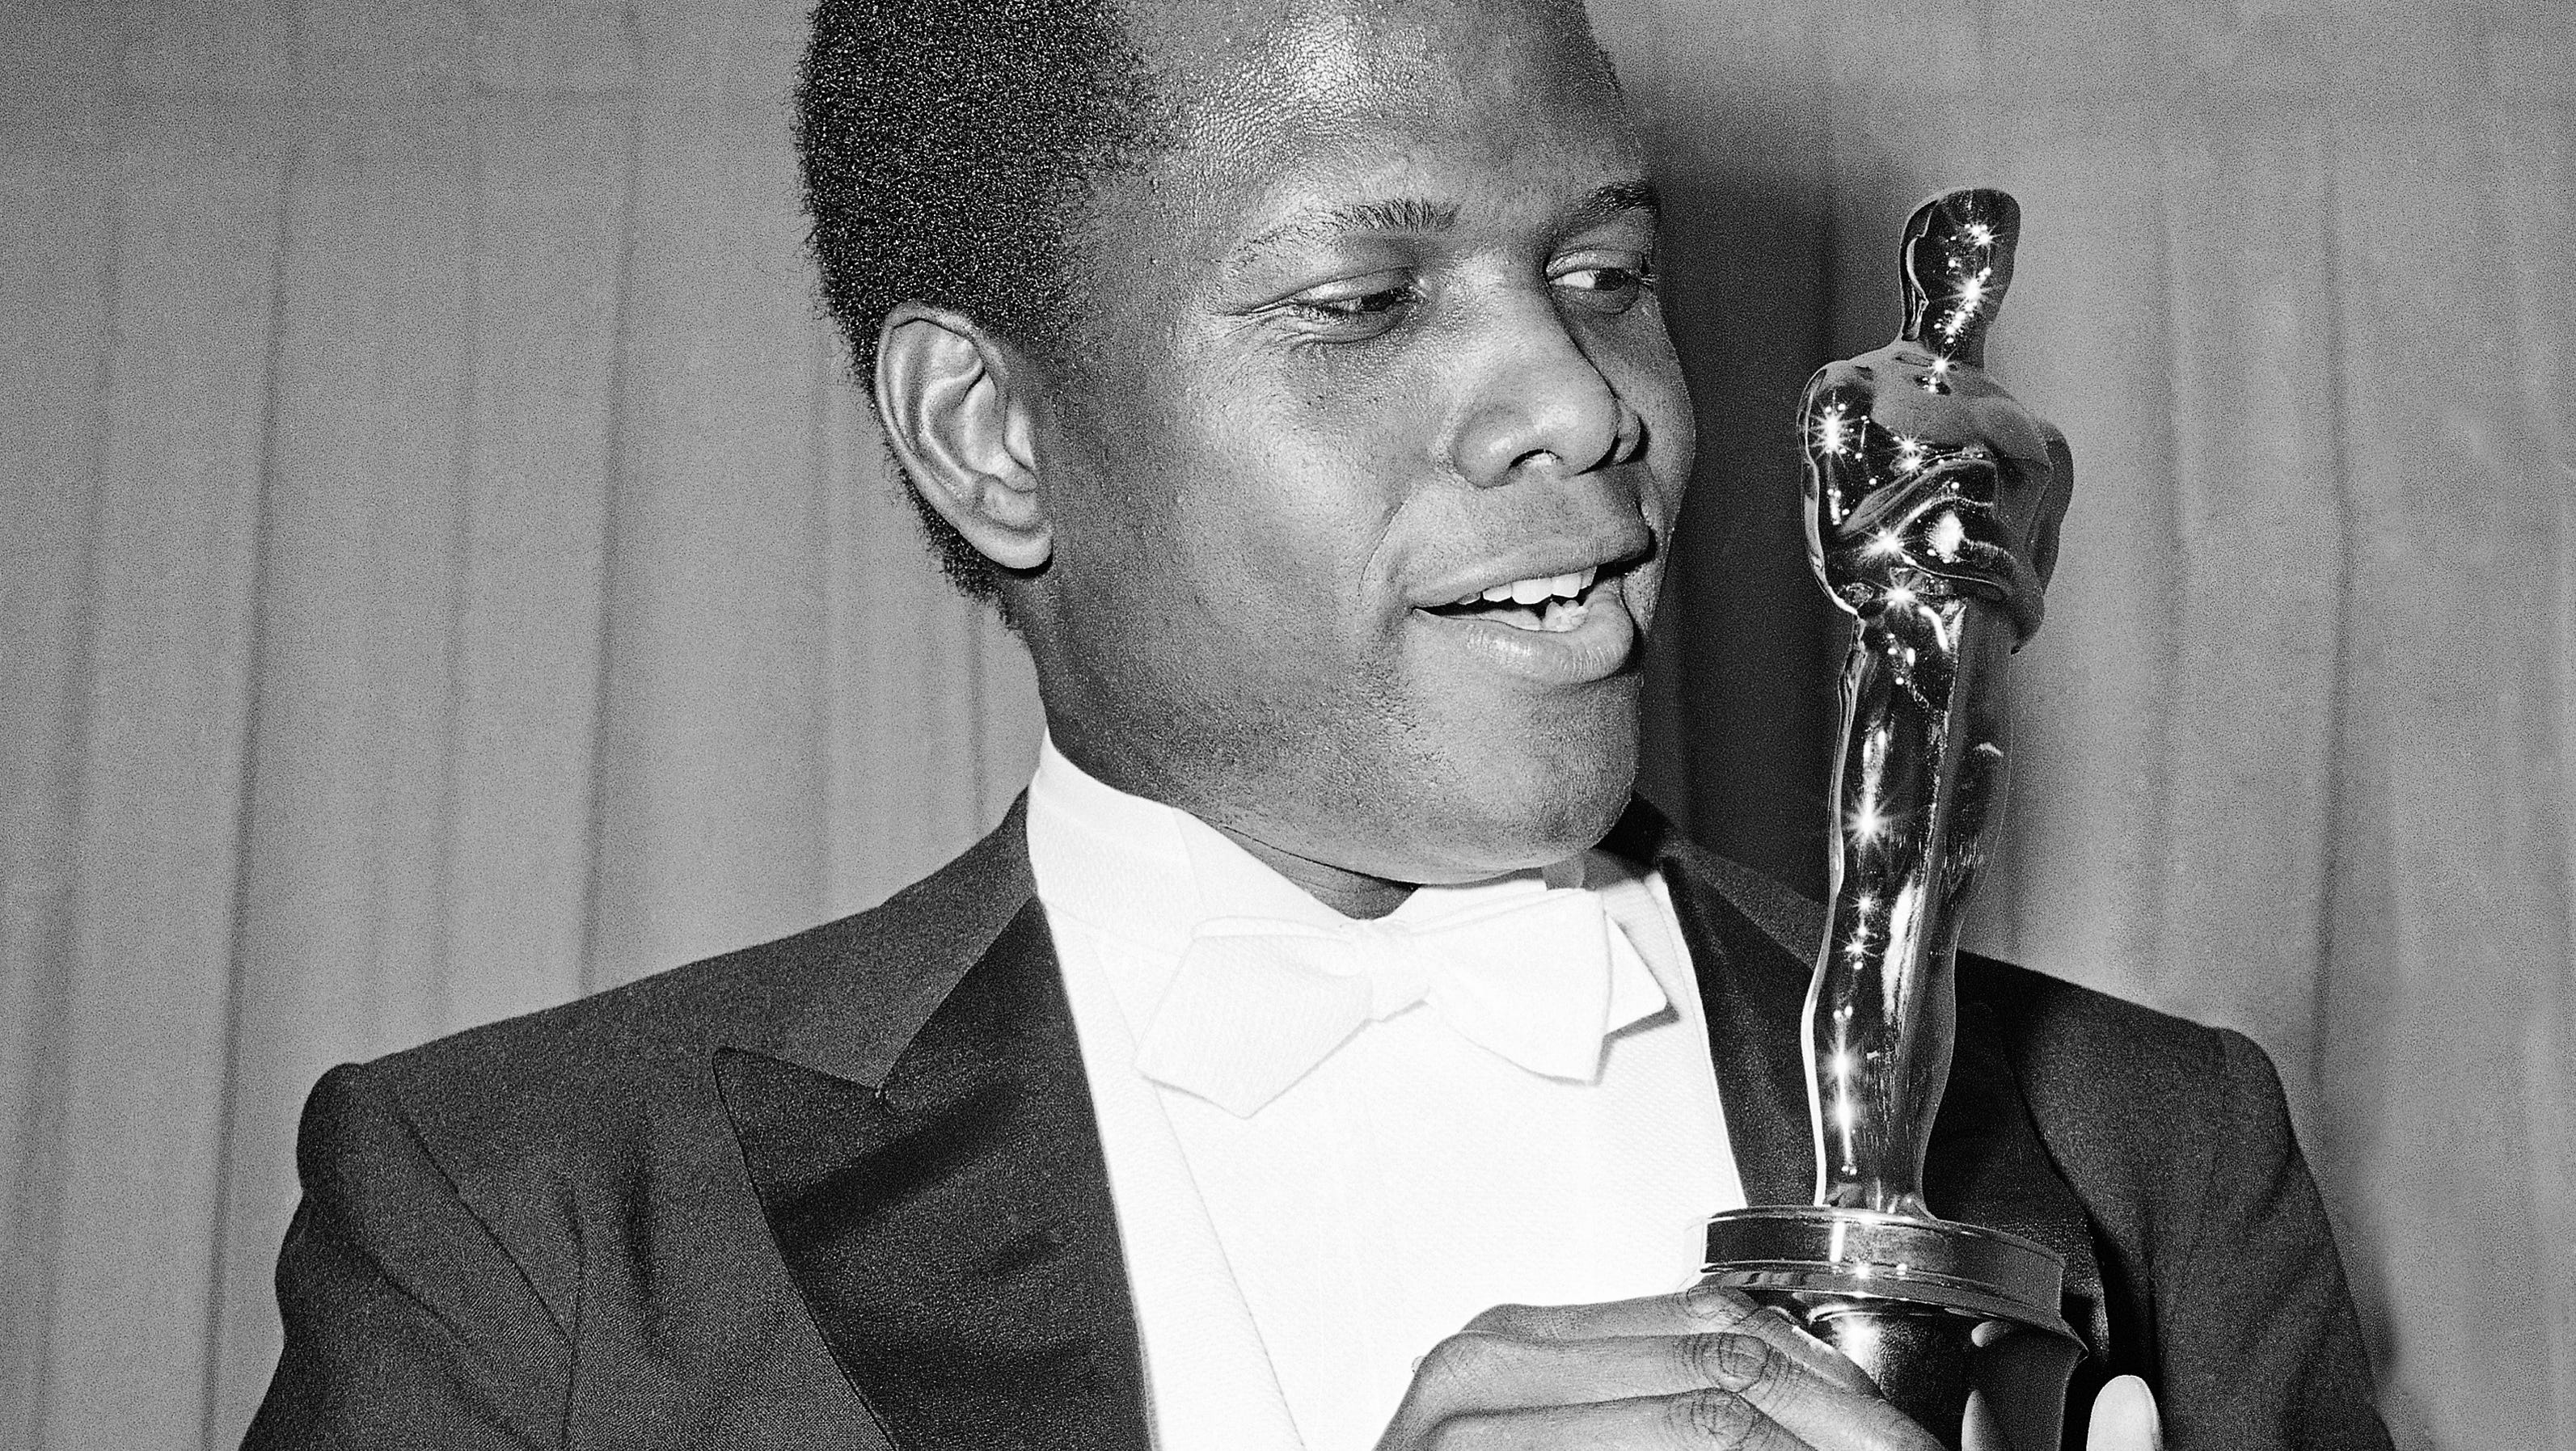 Oscar win proved Sidney Poitier was second to none